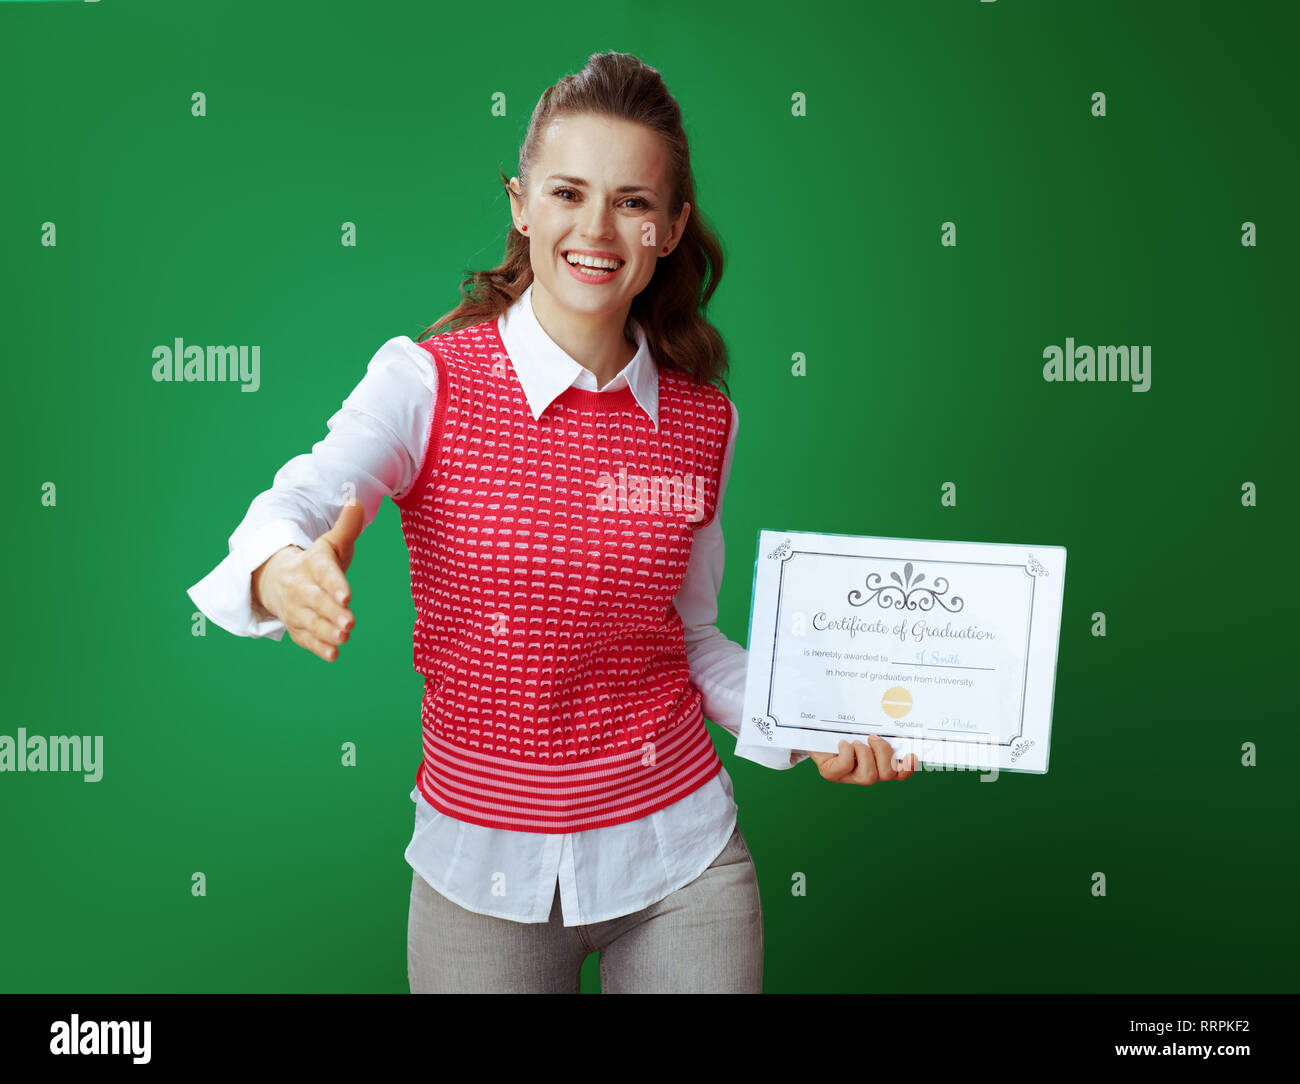 happy fit learner woman in grey jeans and pink sleeveless shirt with Certificate of Graduation giving hand for a handshake isolated on chalkboard gree - Stock Image